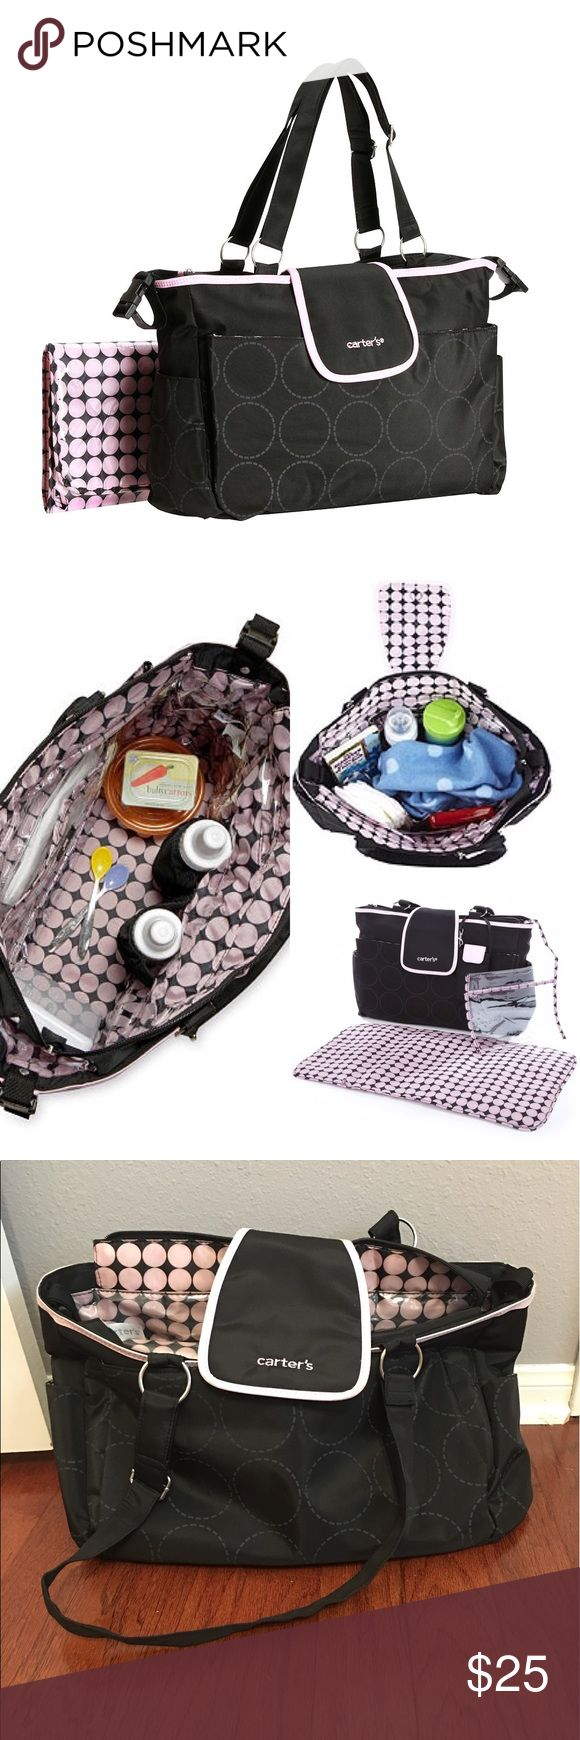 Carter's Diaper Bag Only used once!! Carter's Tonal Dot Diaper Bag in Black and Pink features a spacious main compartment which includes mesh and zippered pockets and a built in bottle holder. This Carter's diaper bag makes cleaning a cinch with easy to wipe interior lining. The bag includes accessory pouch, changing pad, and stroller loops.  features Accessory pouch included Changing pad included Six interior pockets Four exterior pockets Carter's Bags Baby Bags